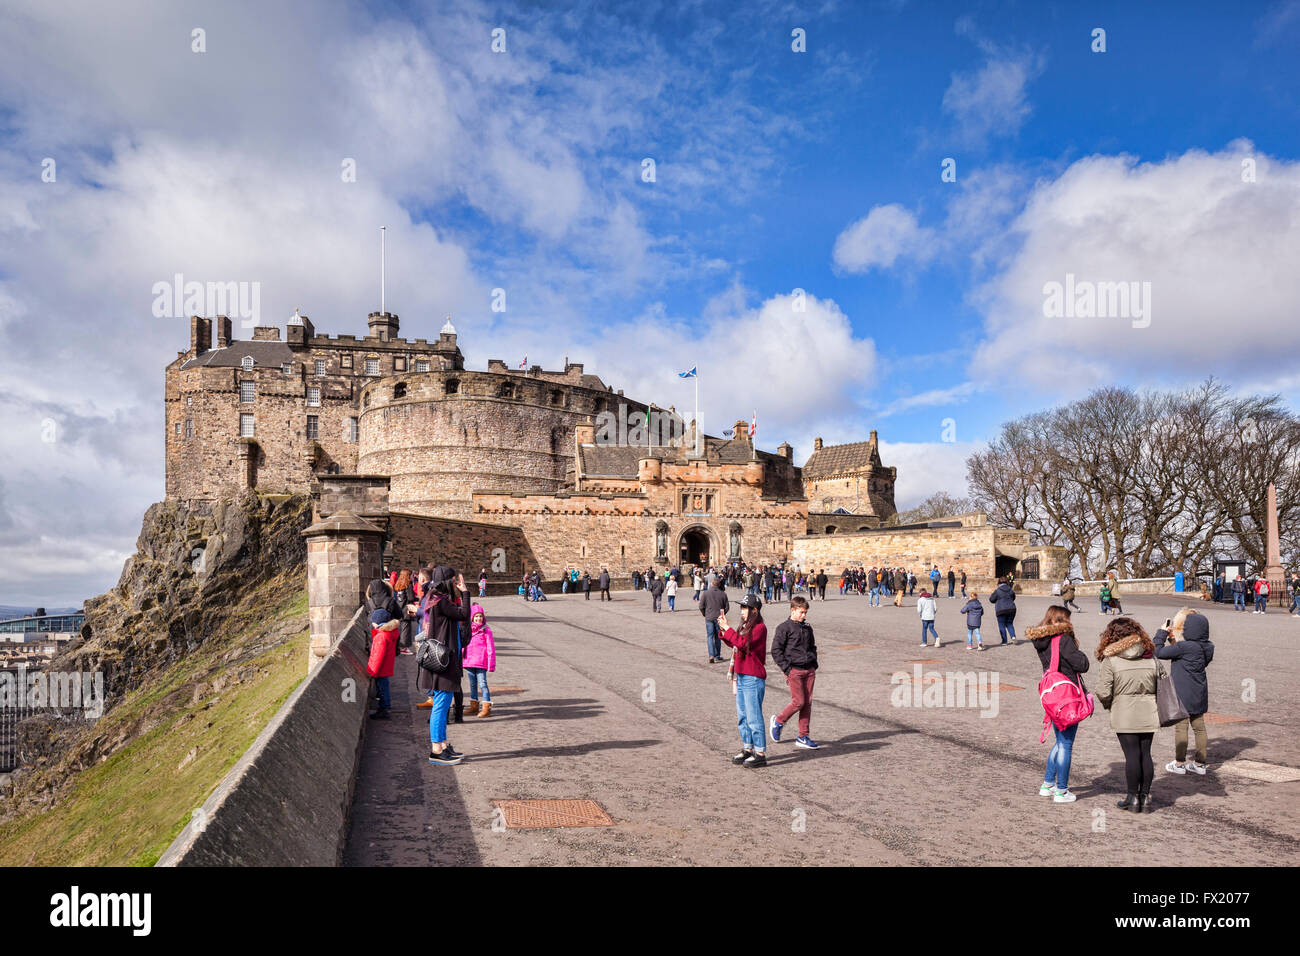 Tourists in the forecourt of Edinburgh Castle on a bright Spring day, Edinburgh, East Lothian, Scotland, UK Stock Photo